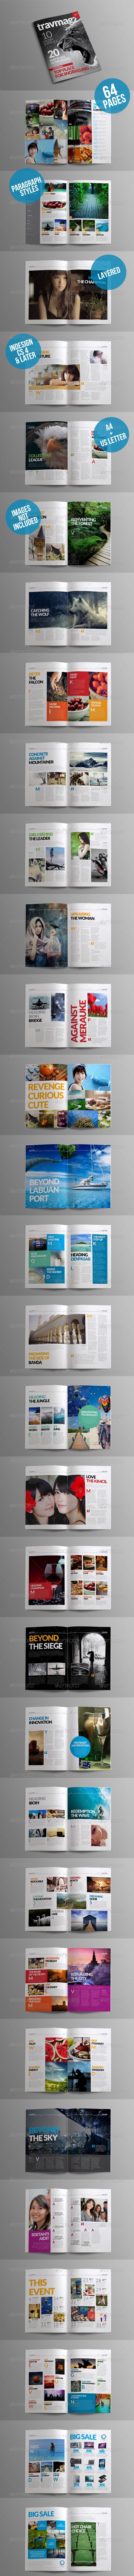 GraphicRiver Simple Magazine Volume III 7744010